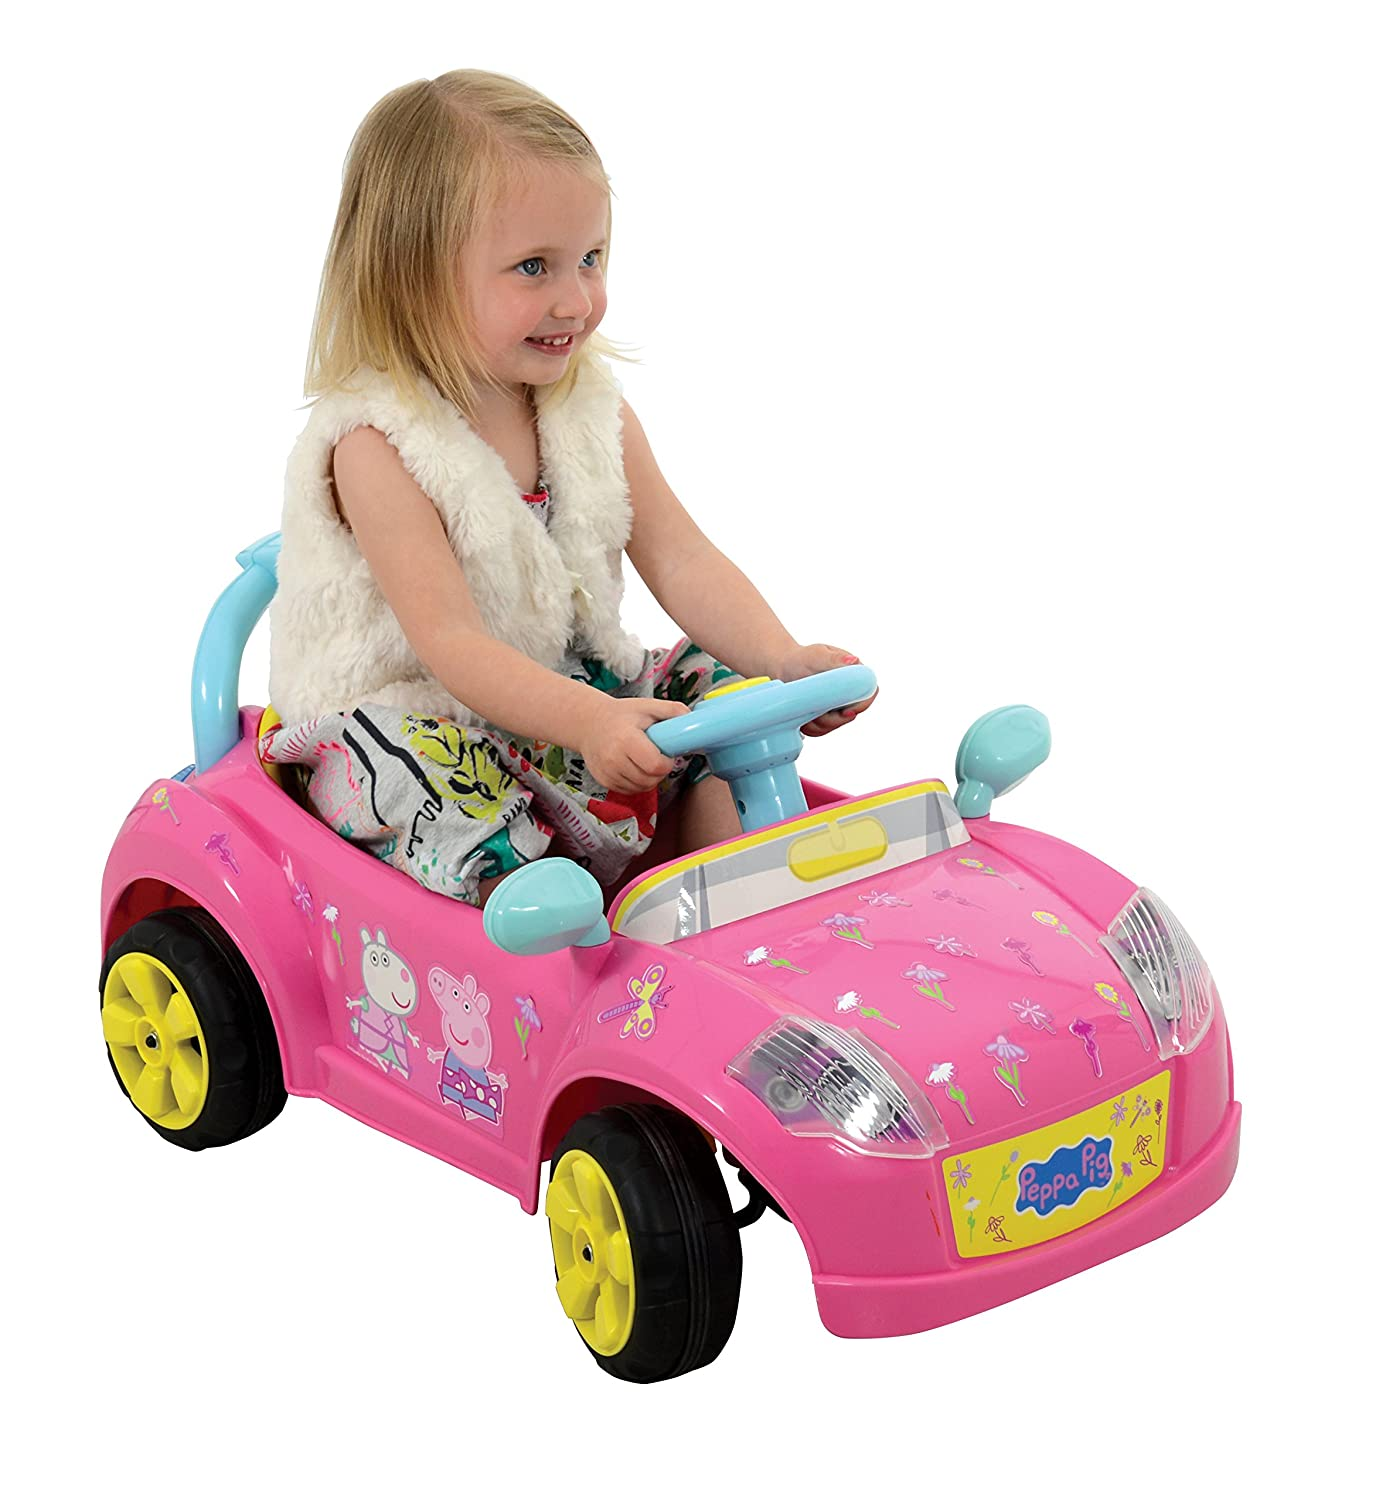 Peppa Pig M 6 V Battery Operated Car Toy Amazon Toys